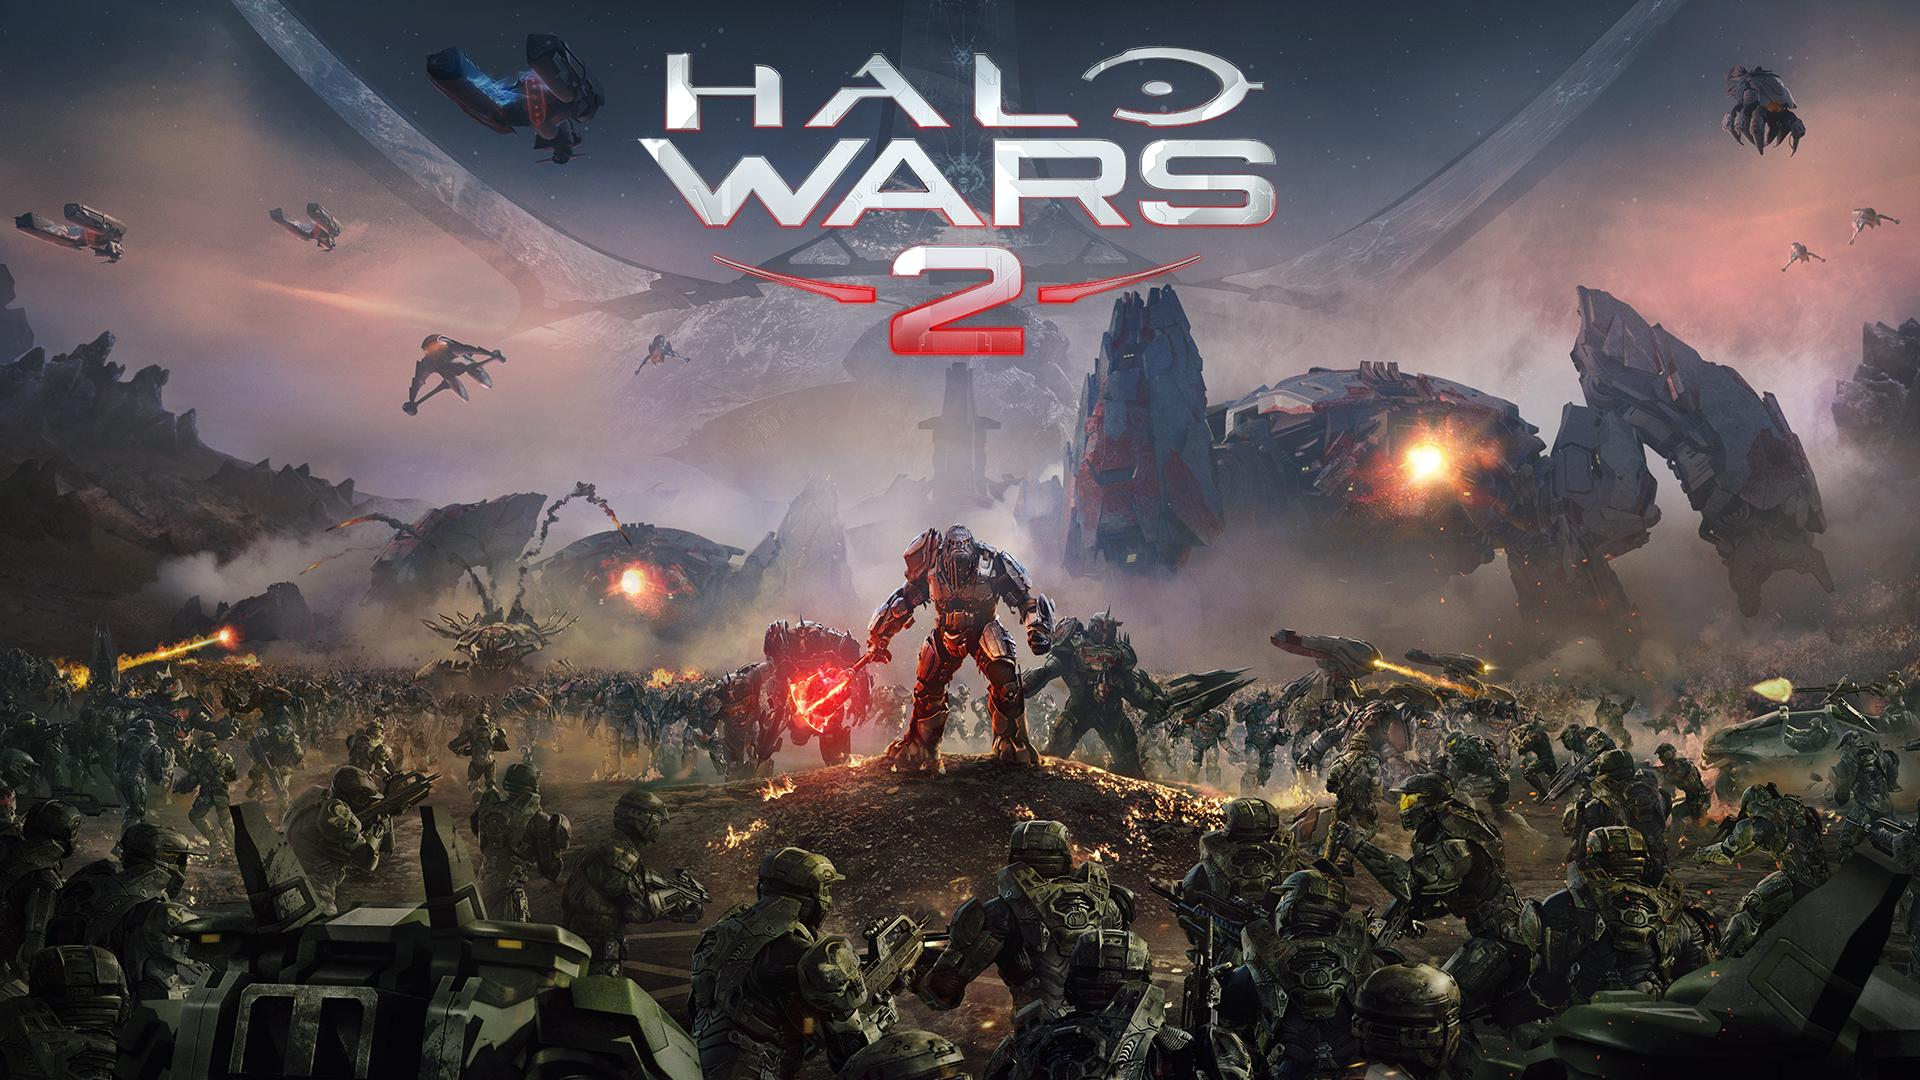 4K, HDR, Crossplay, Xbox Arena & more coming to Halo Wars 2 soon.